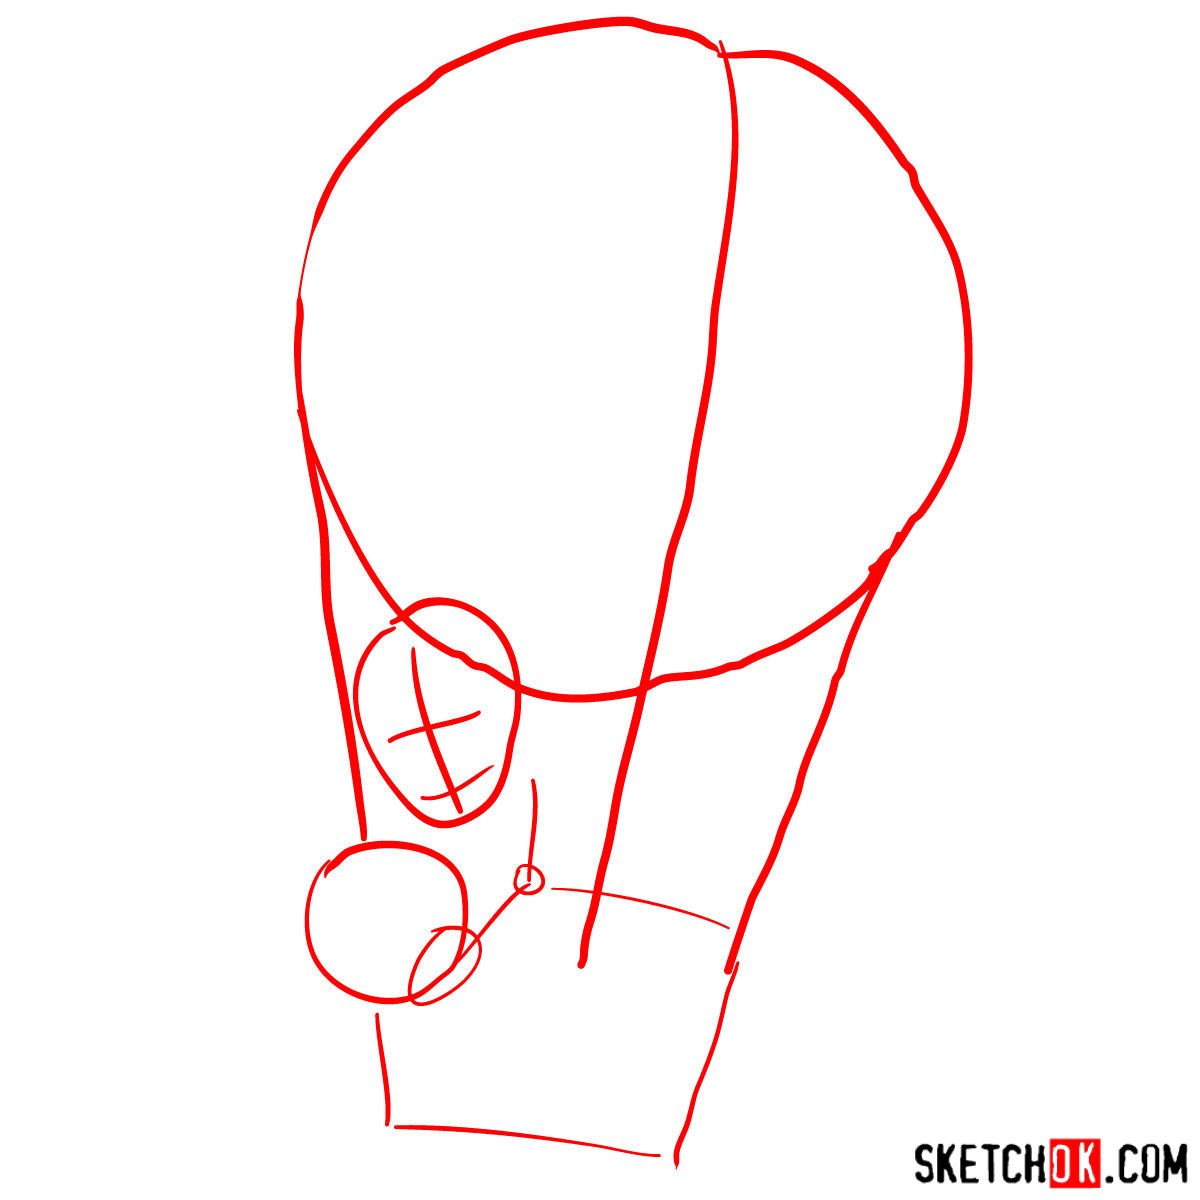 How to draw Balloon with a skeleton - step 01